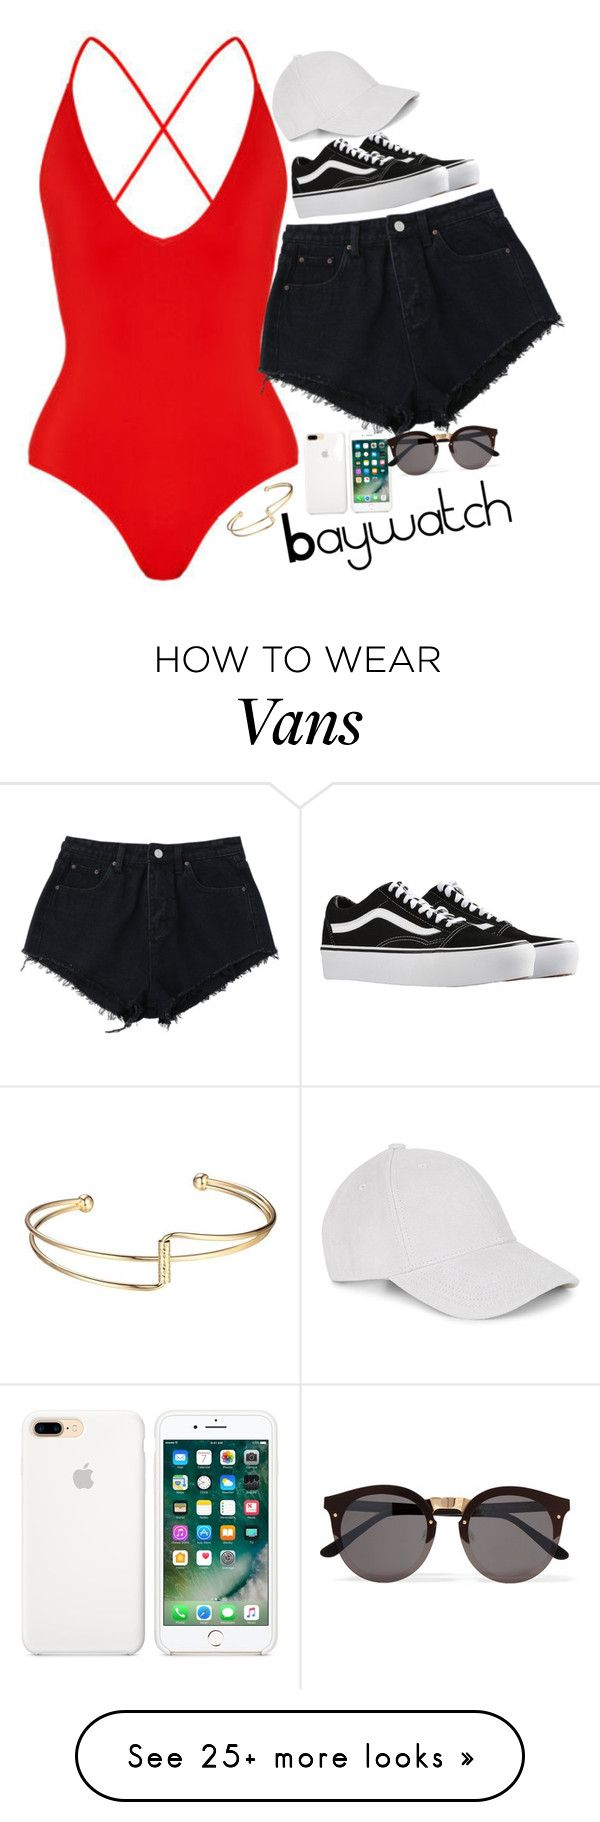 """Baywatch today!!"" by smokeylovebae on Polyvore featuring Vans and Illesteva"